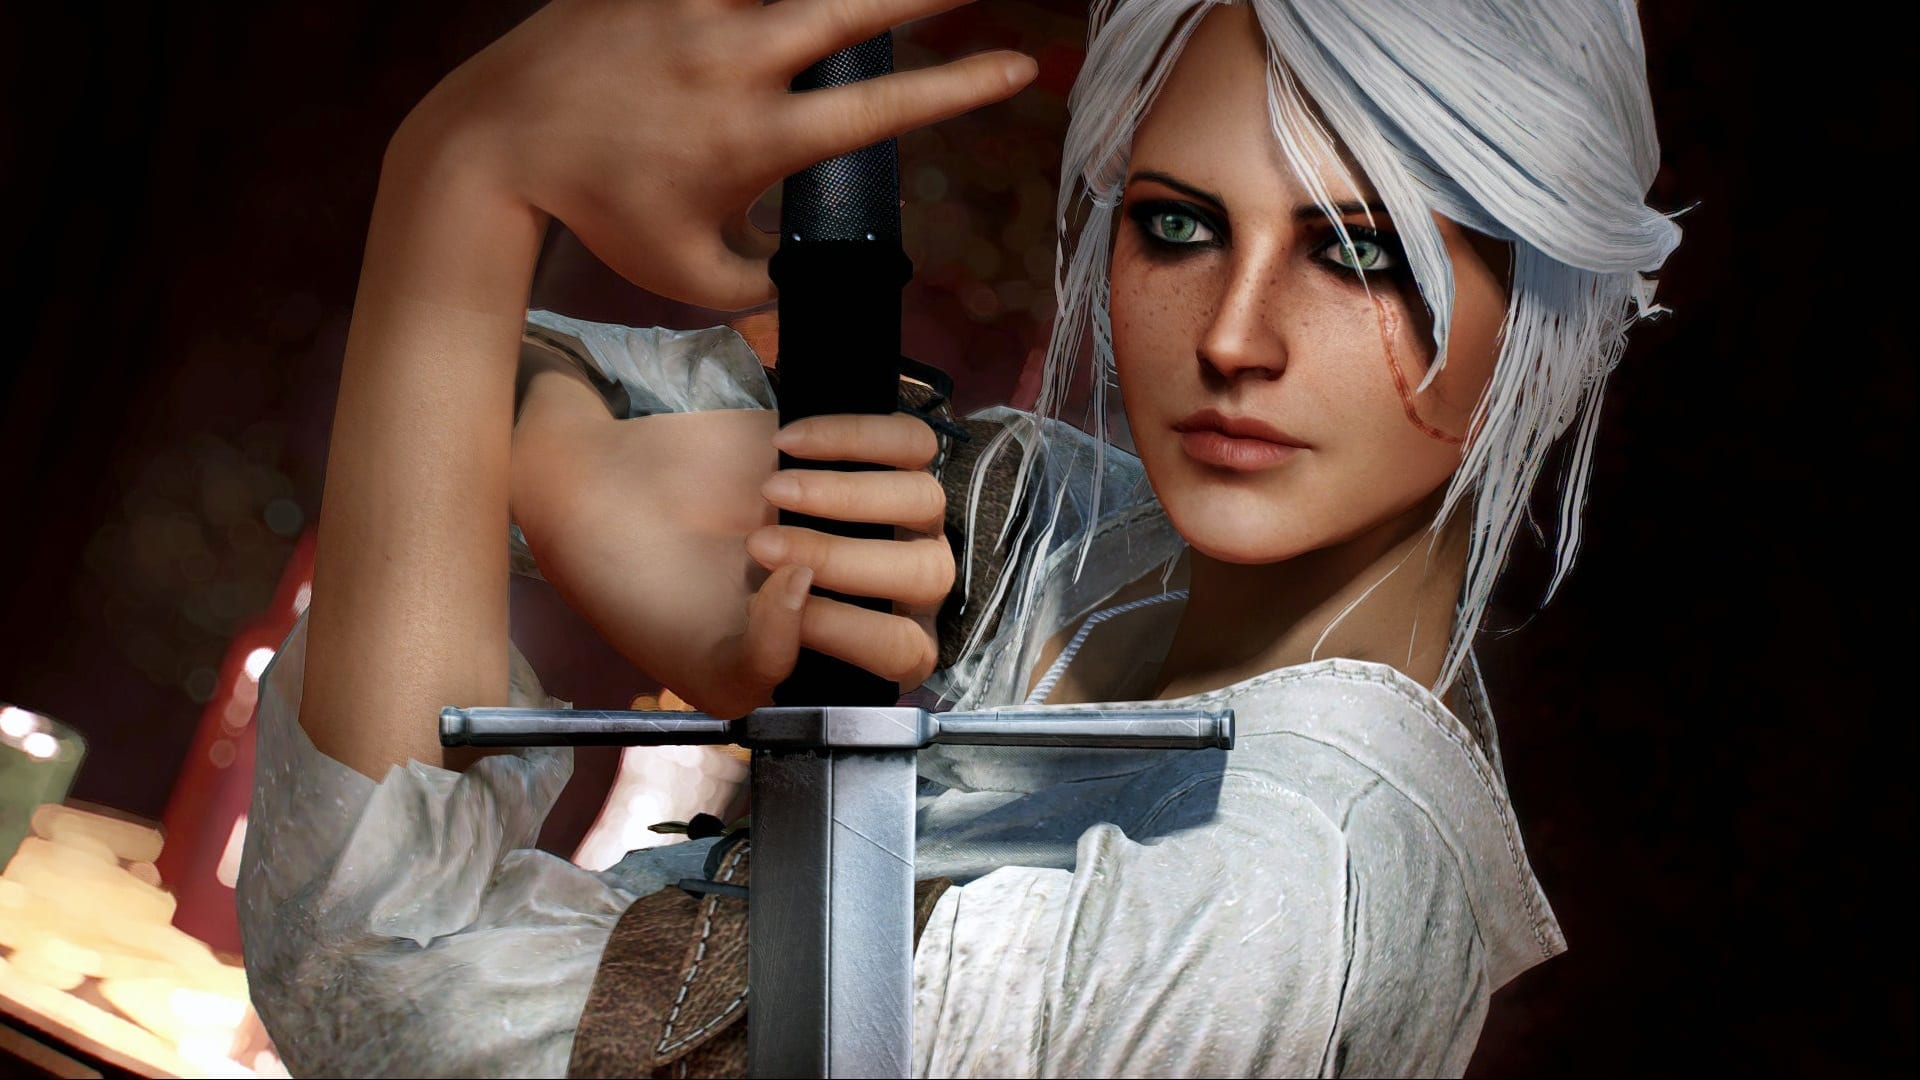 Witcher 3 Characters, Geralt and Ciri in Fallout 4